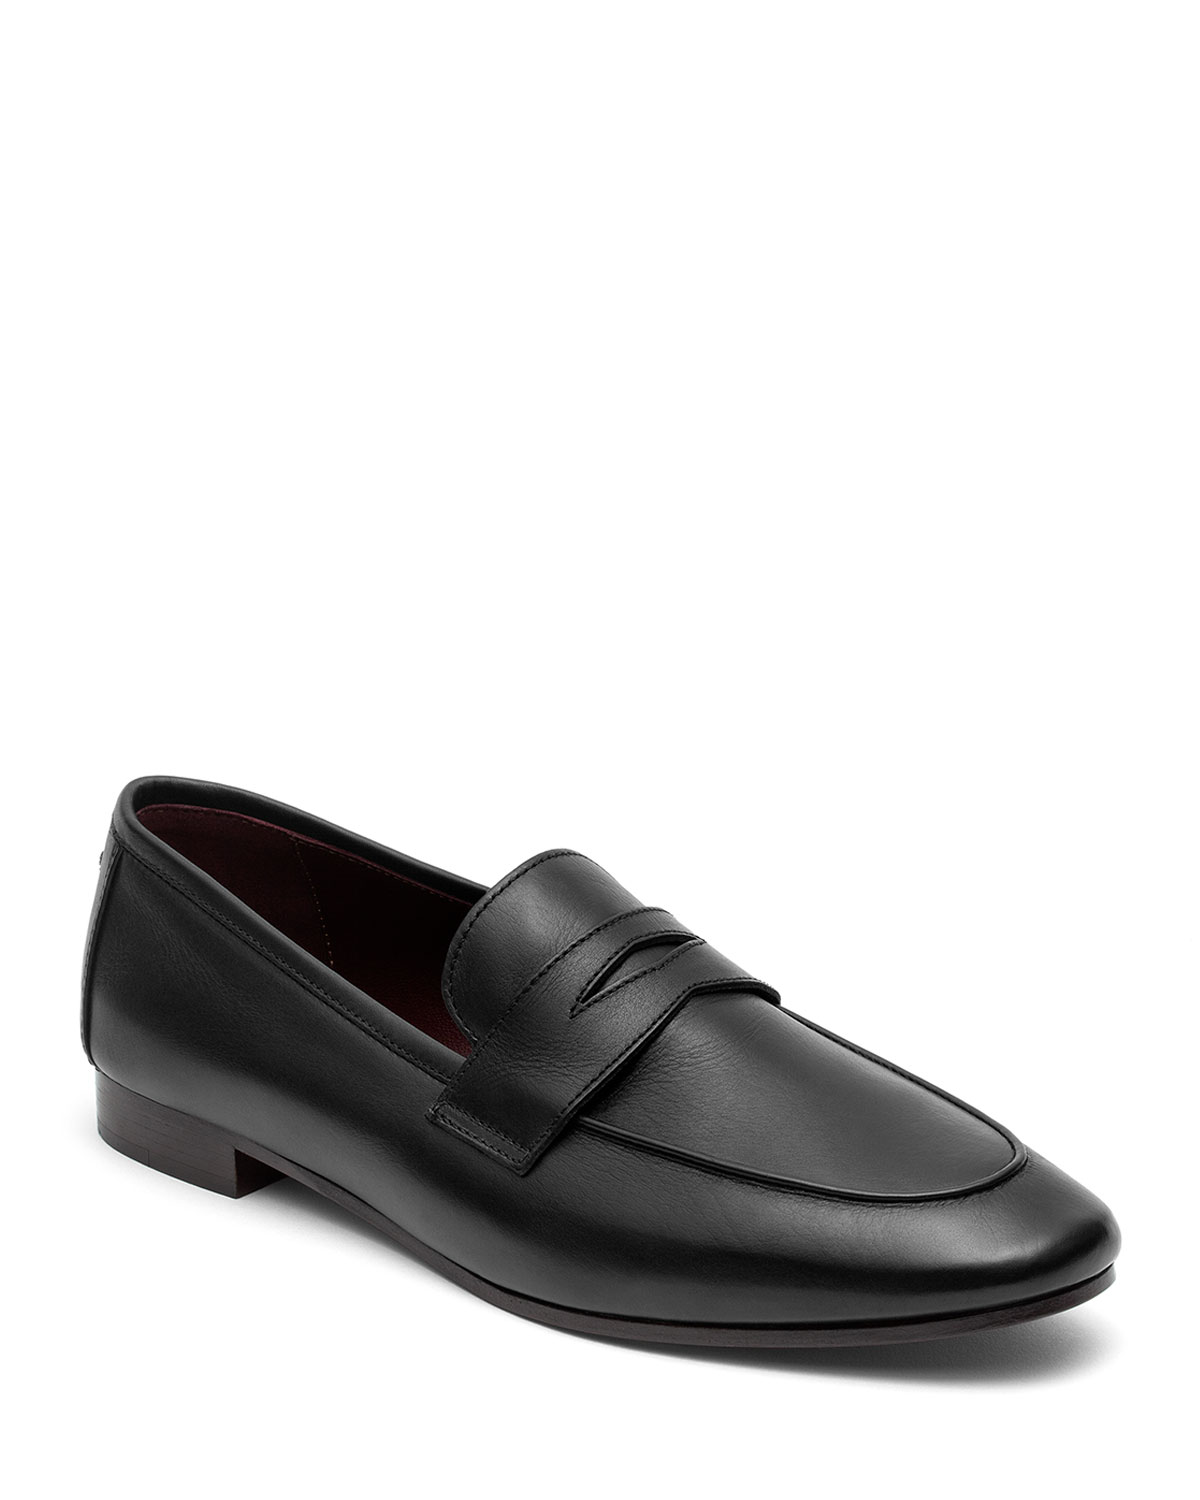 Flaneur Leather Flat Penny Loafers